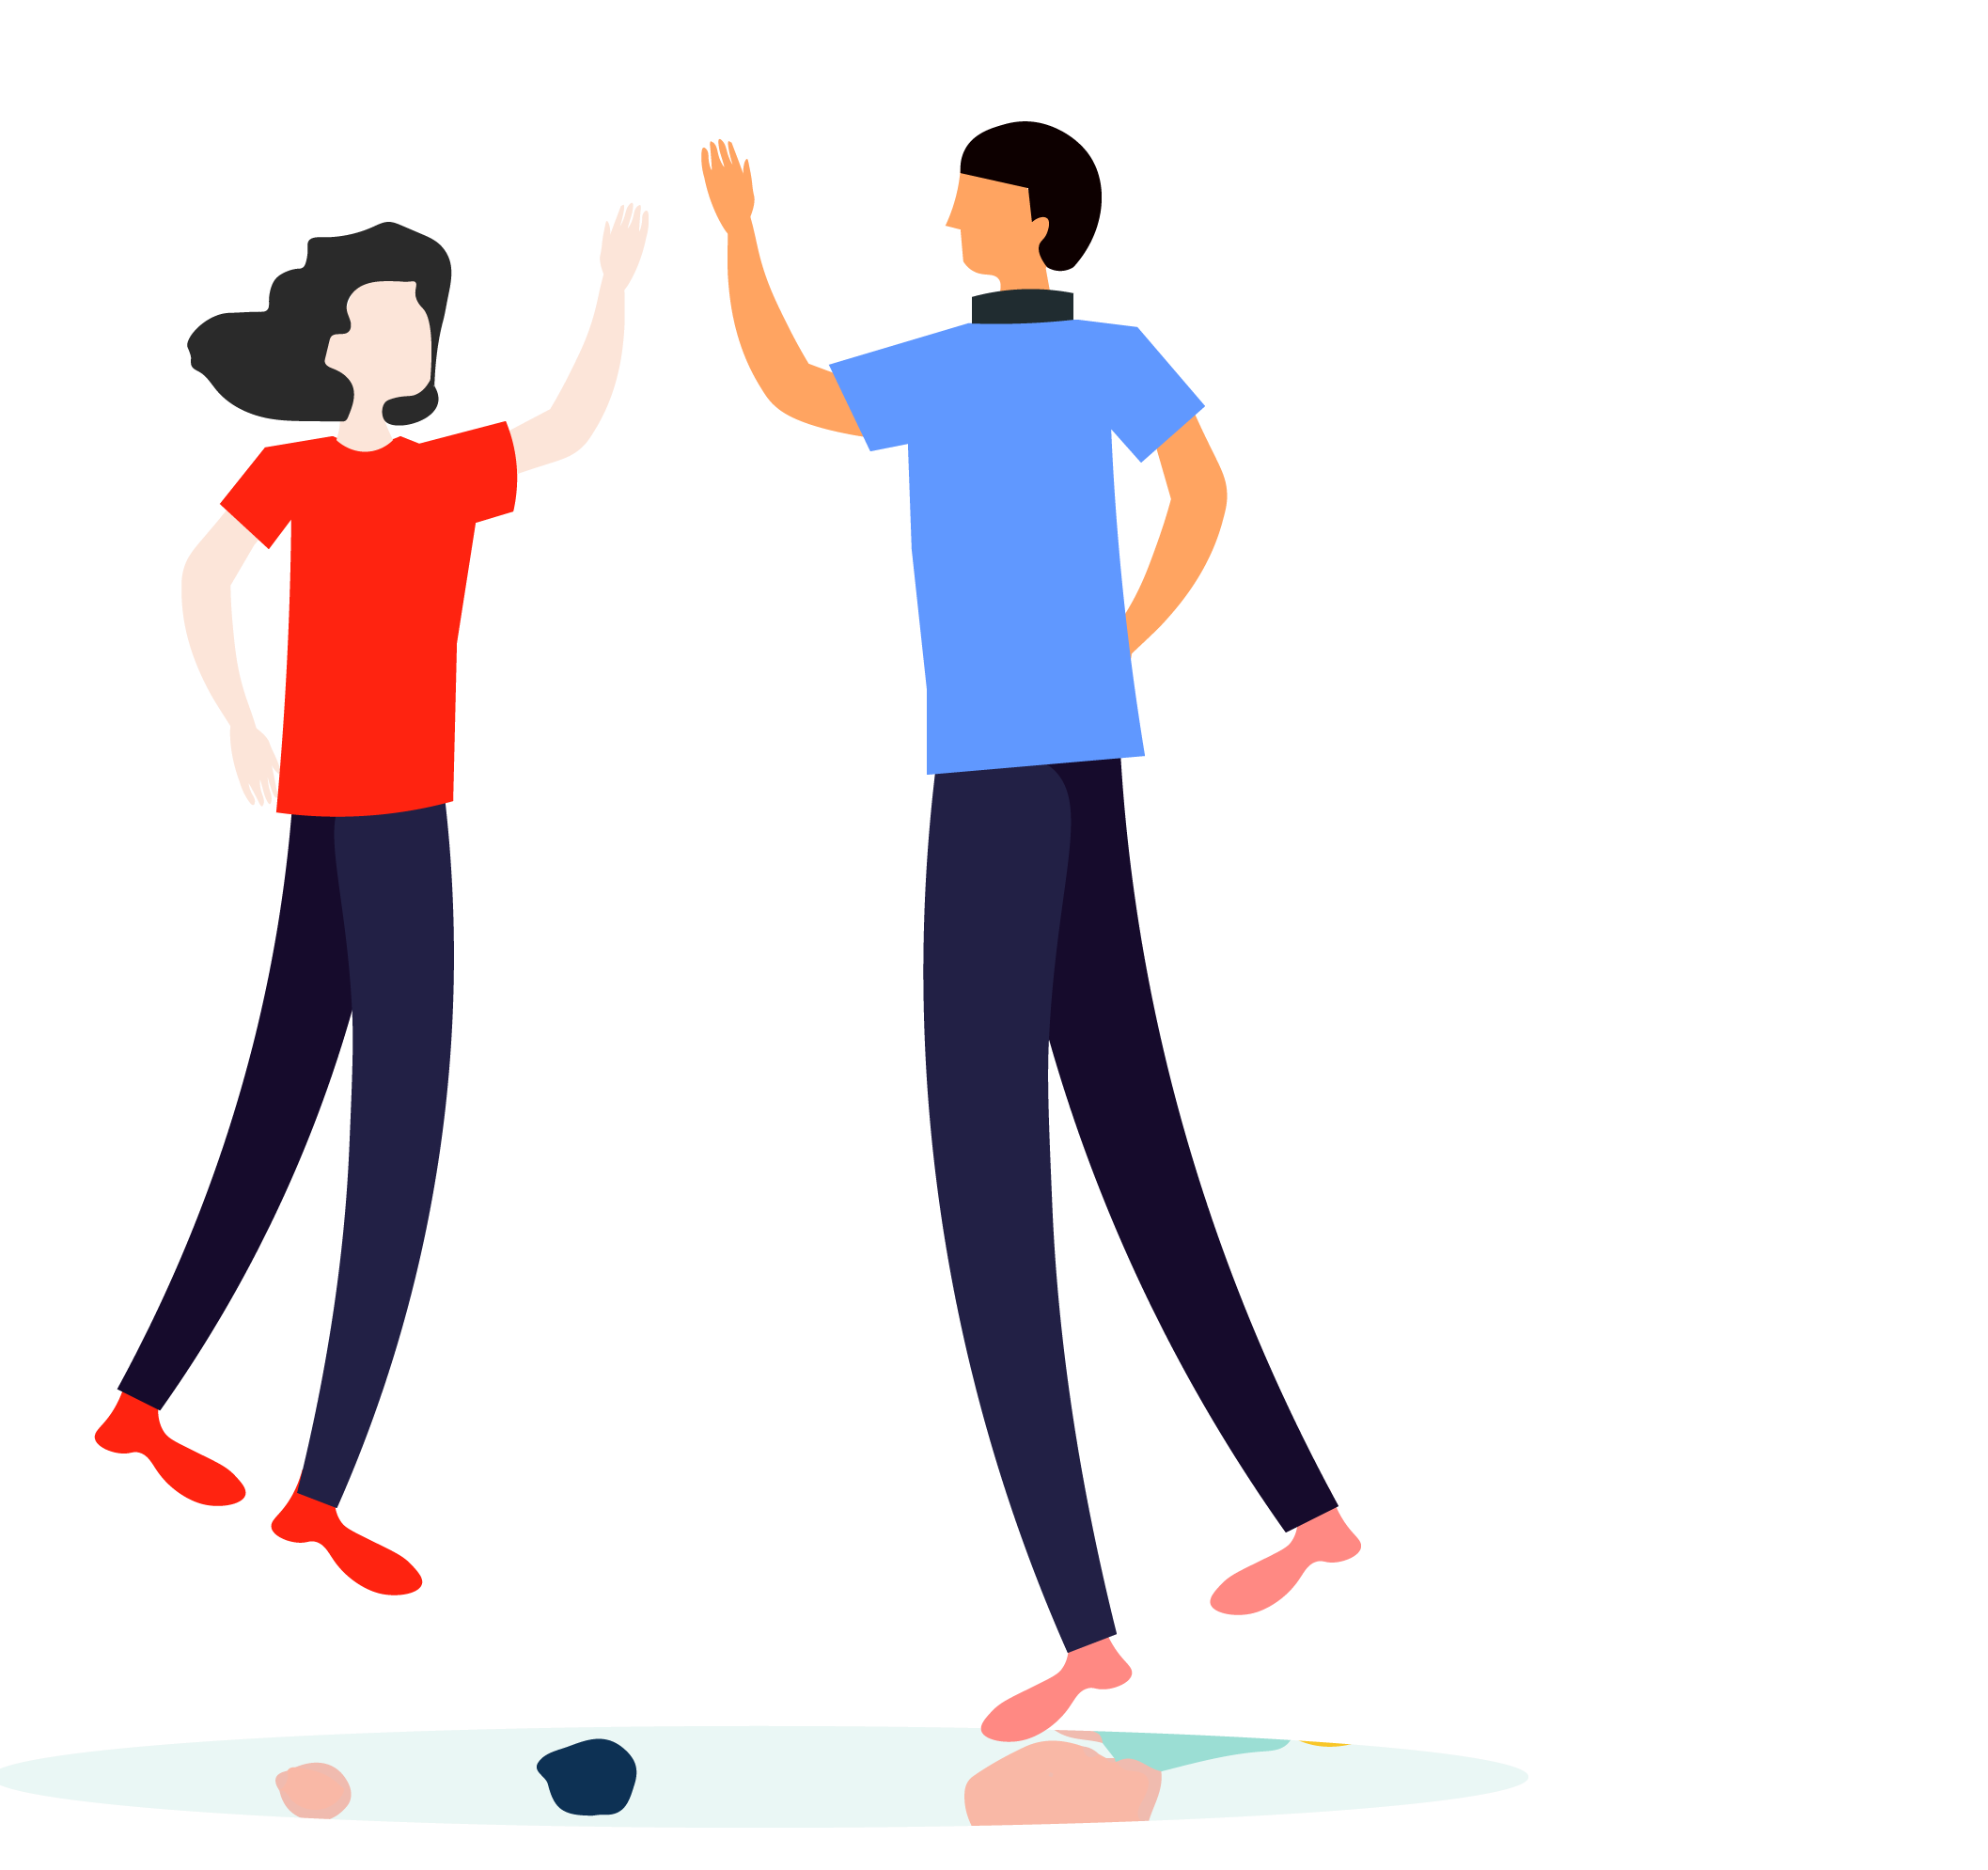 Icon of male and female high-fiving